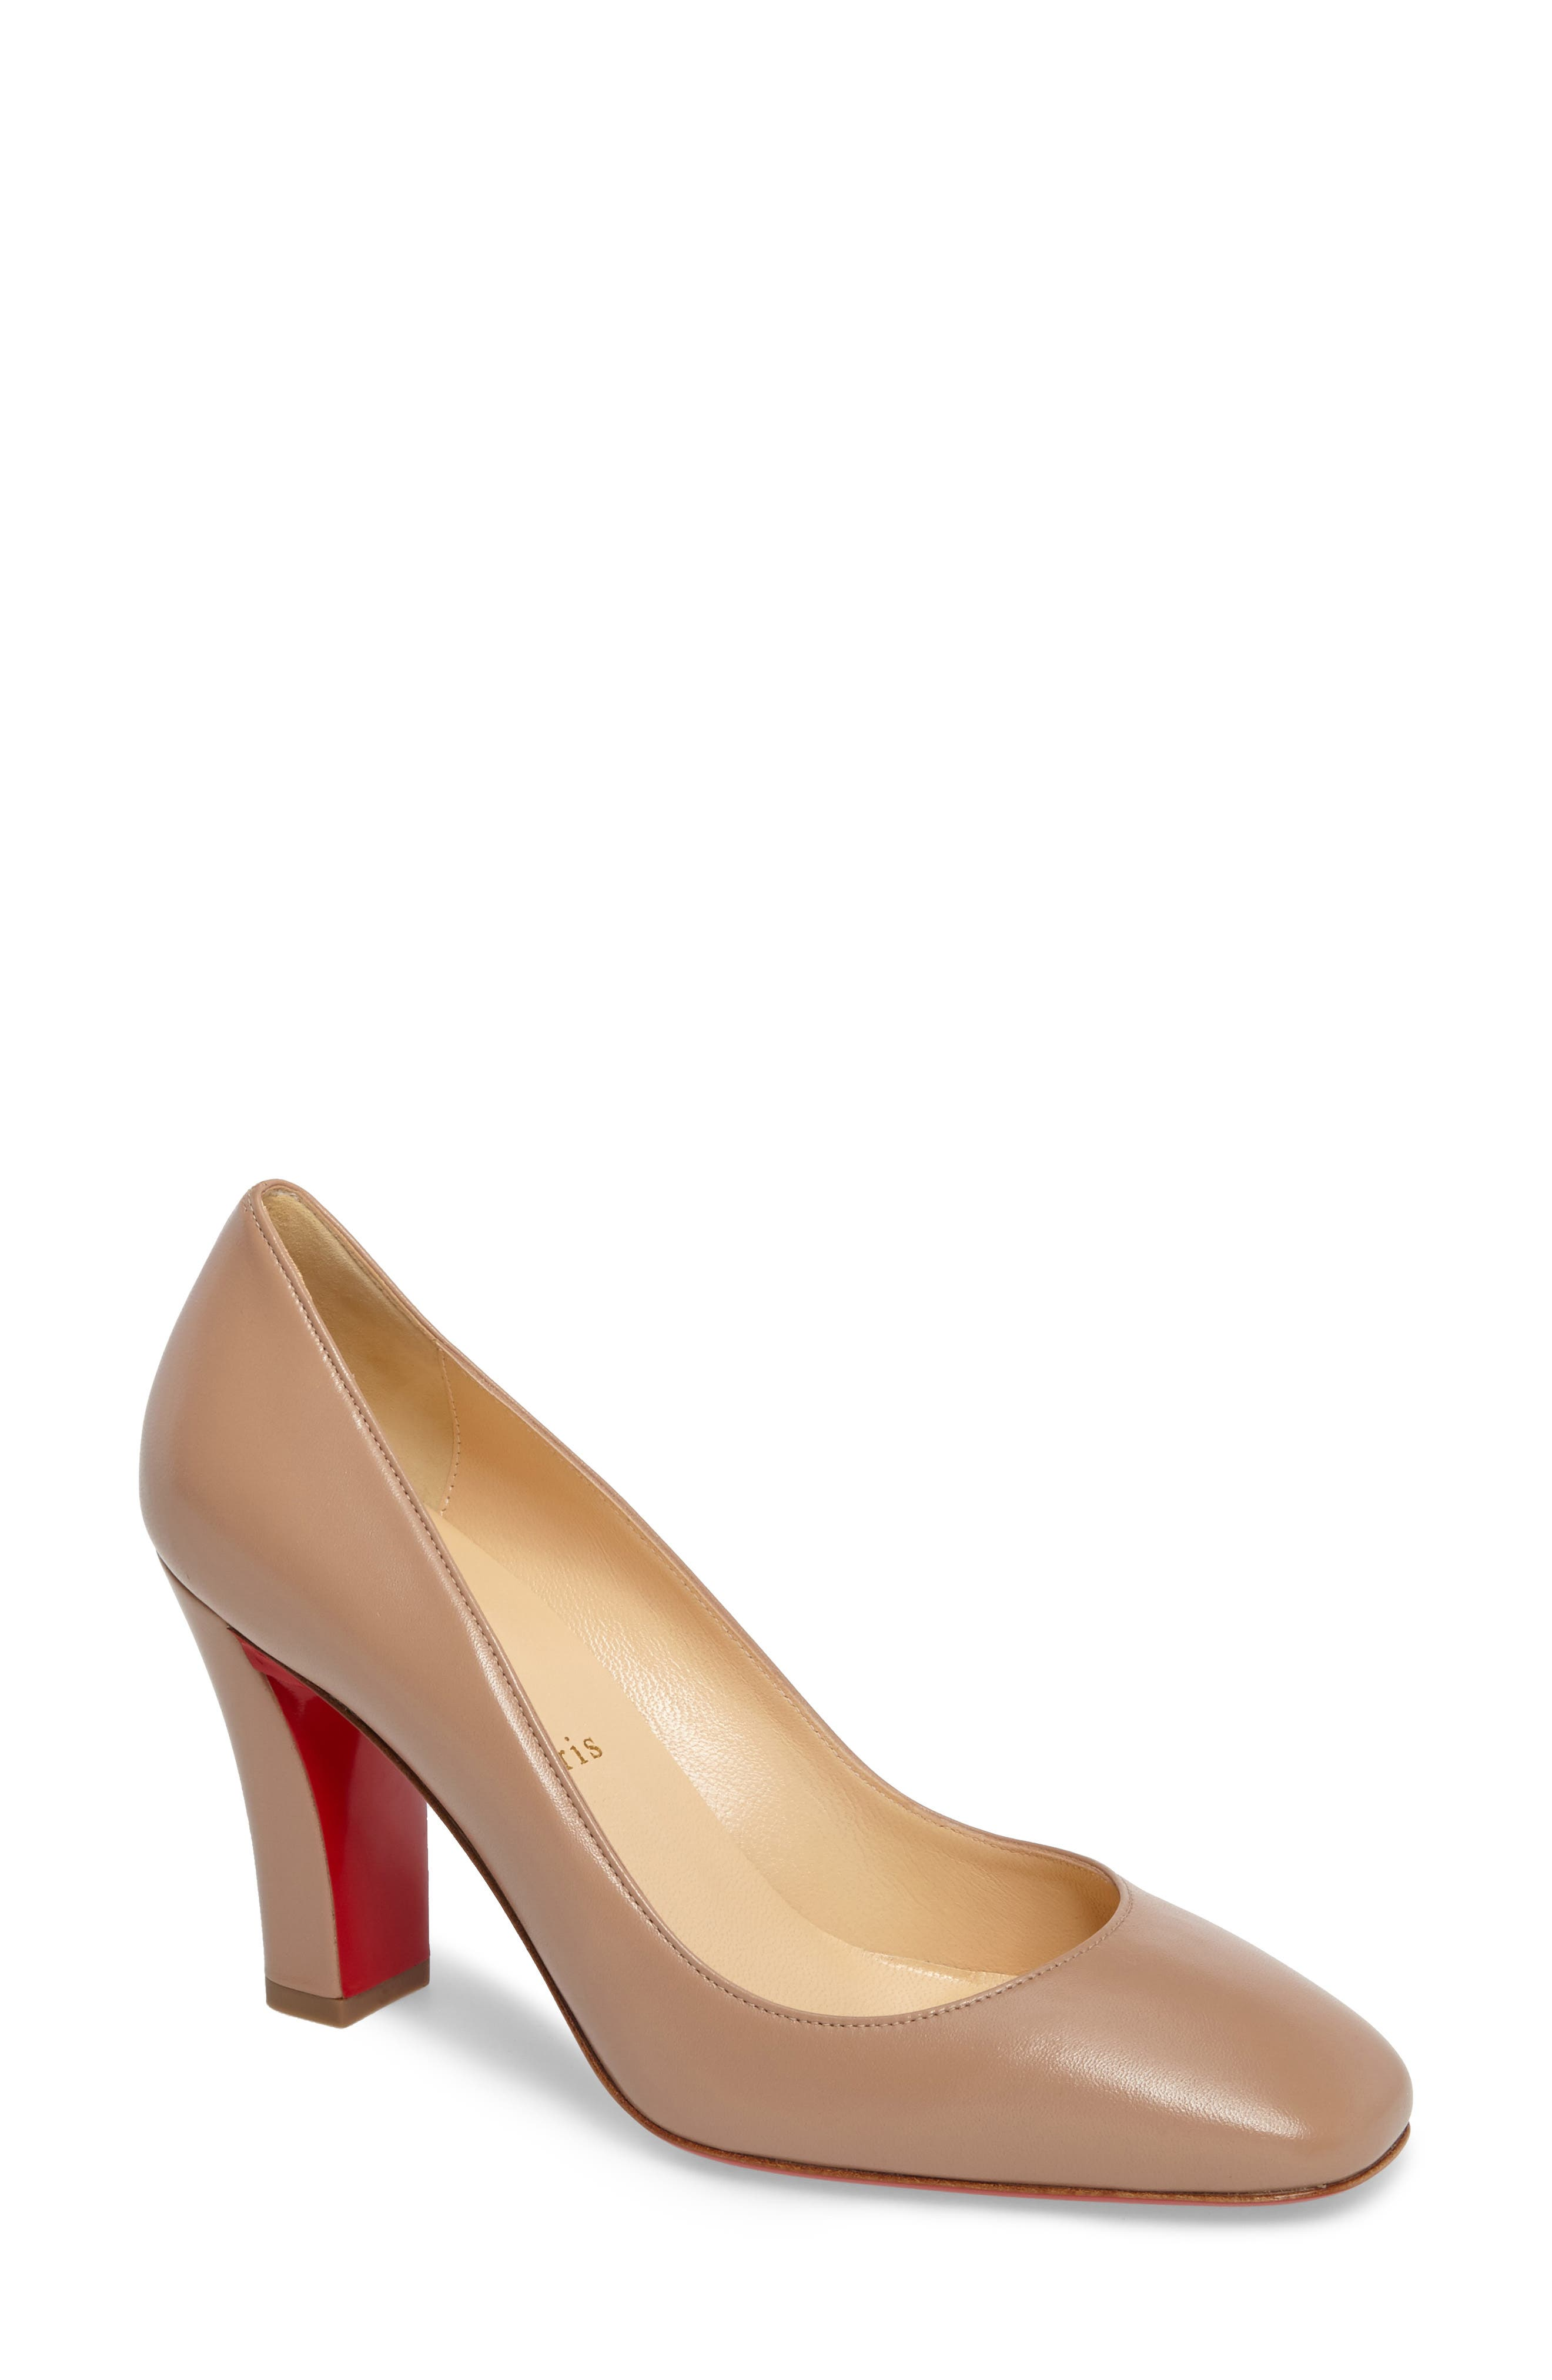 Viva Pump,                             Main thumbnail 1, color,                             NUDE LEATHER